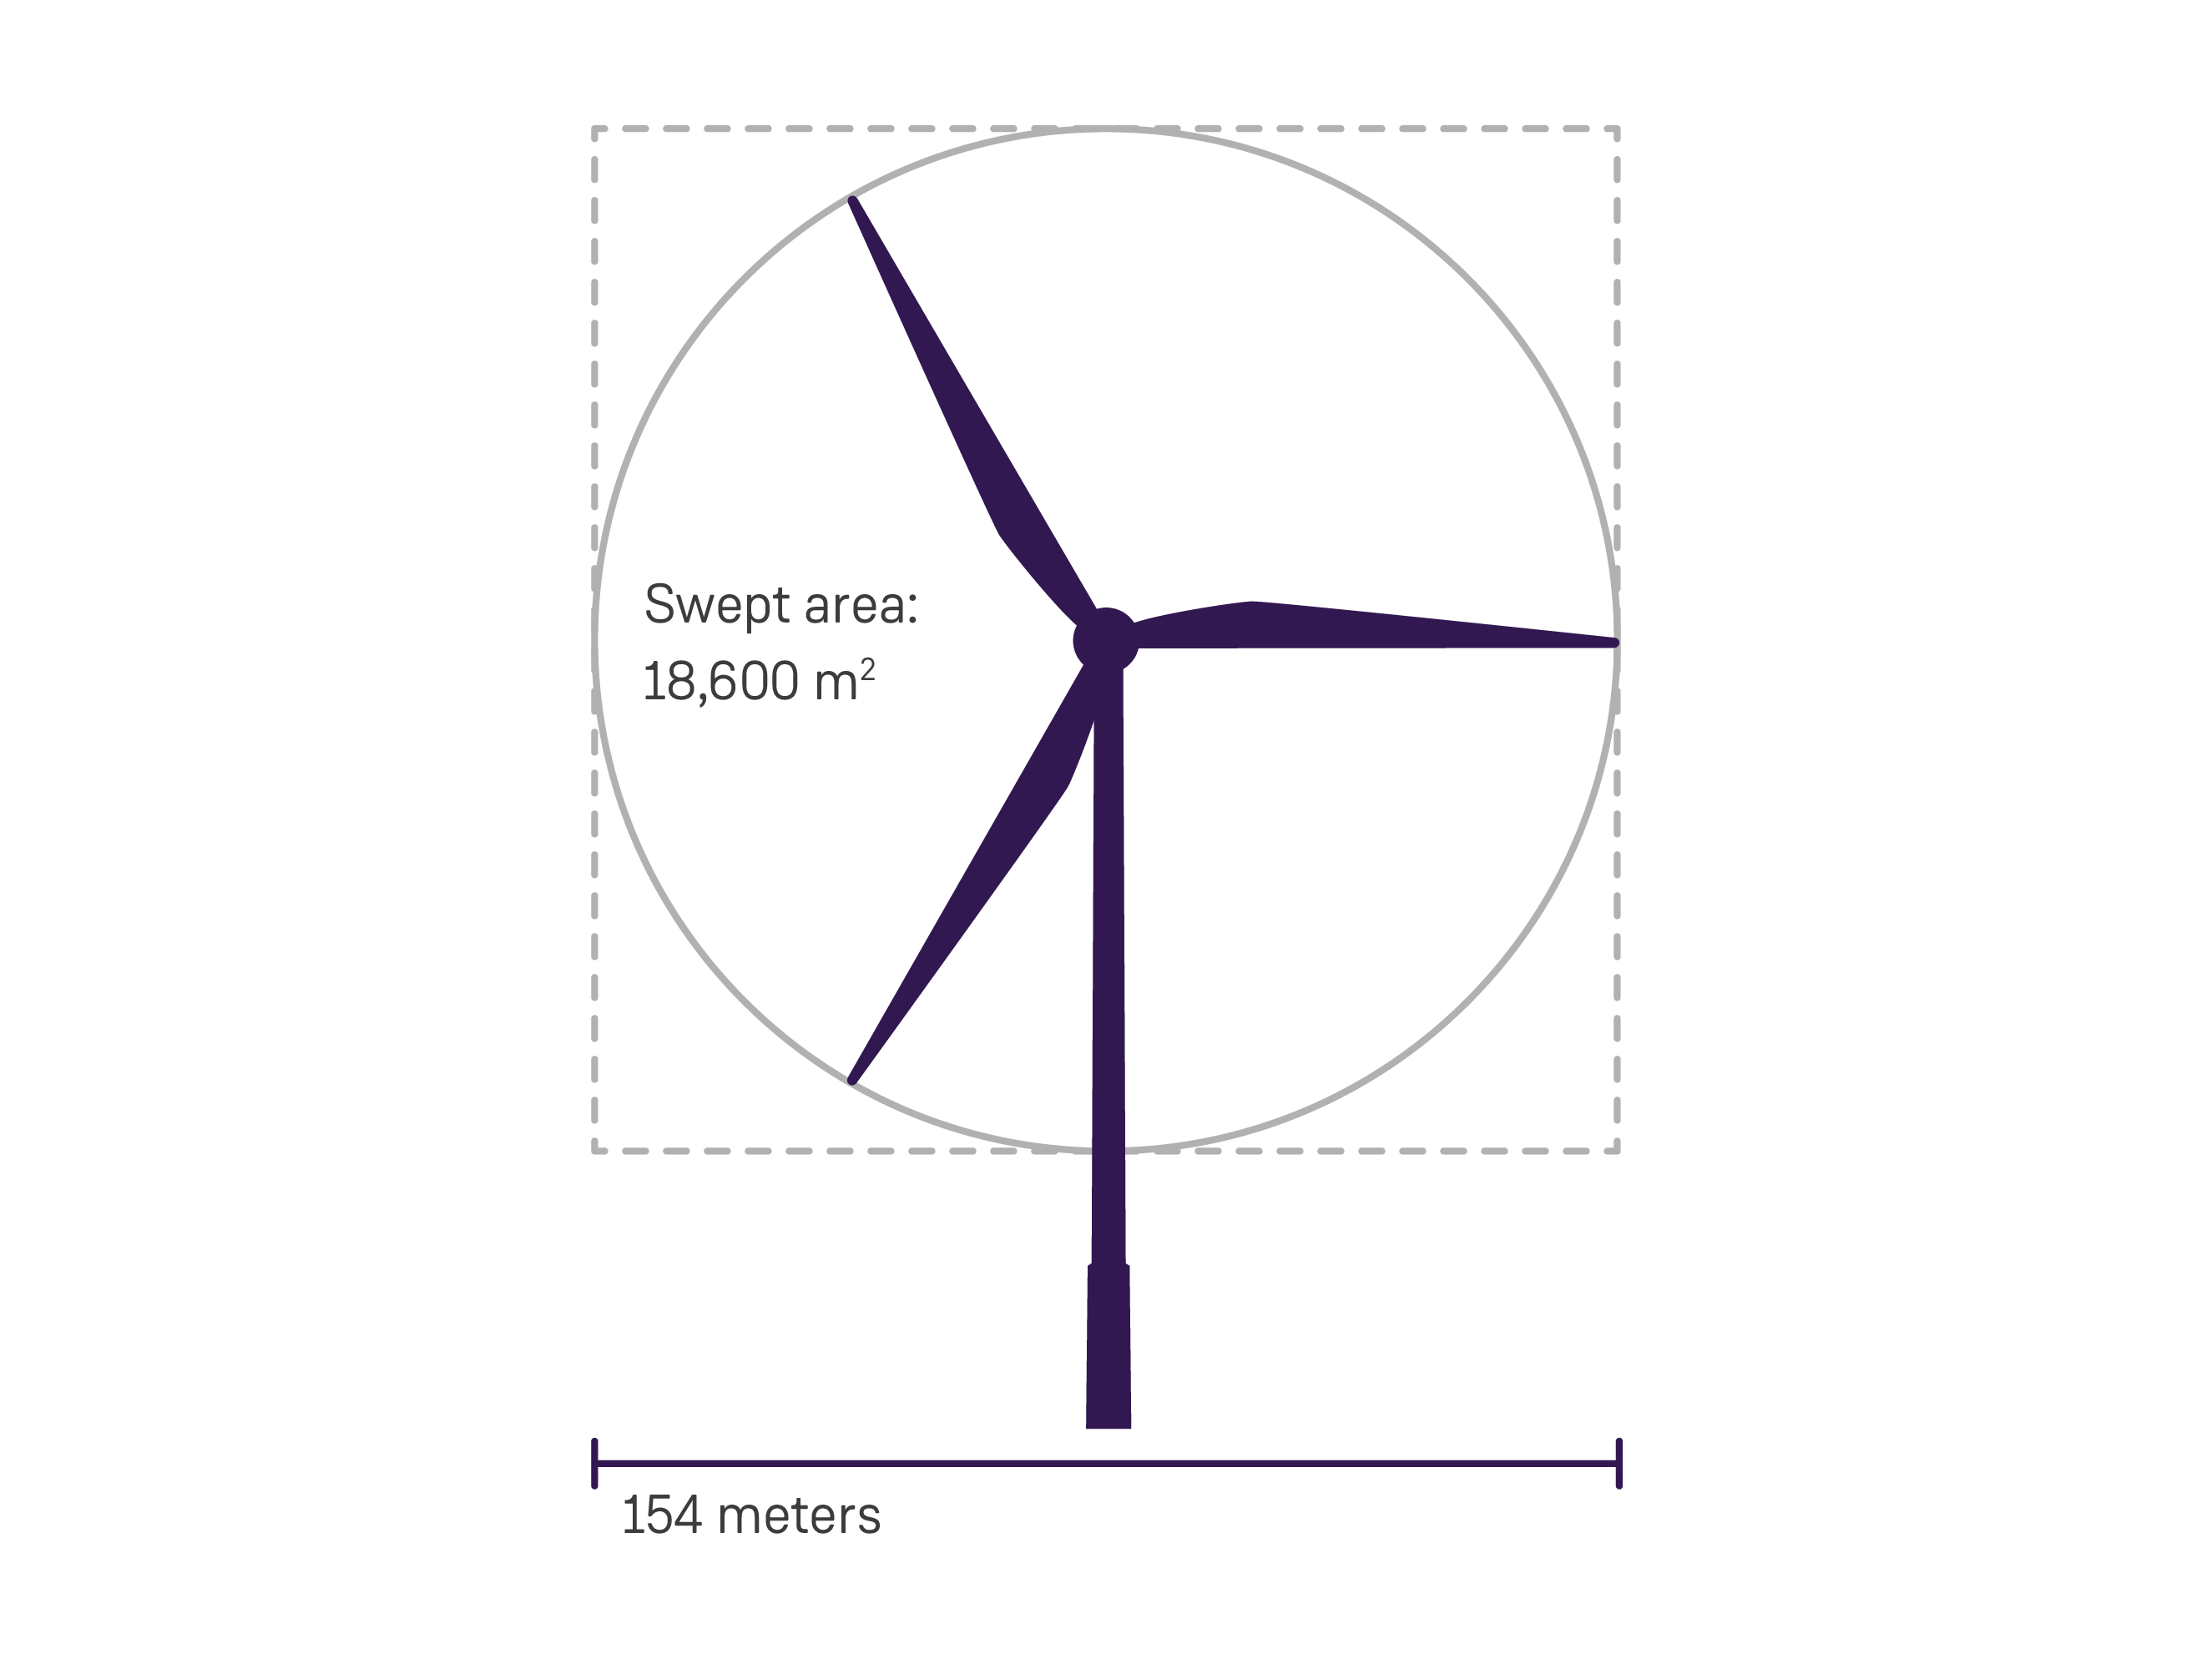 Offshore Wind Turbine SWT-6.0-154 I Siemens Gamesa